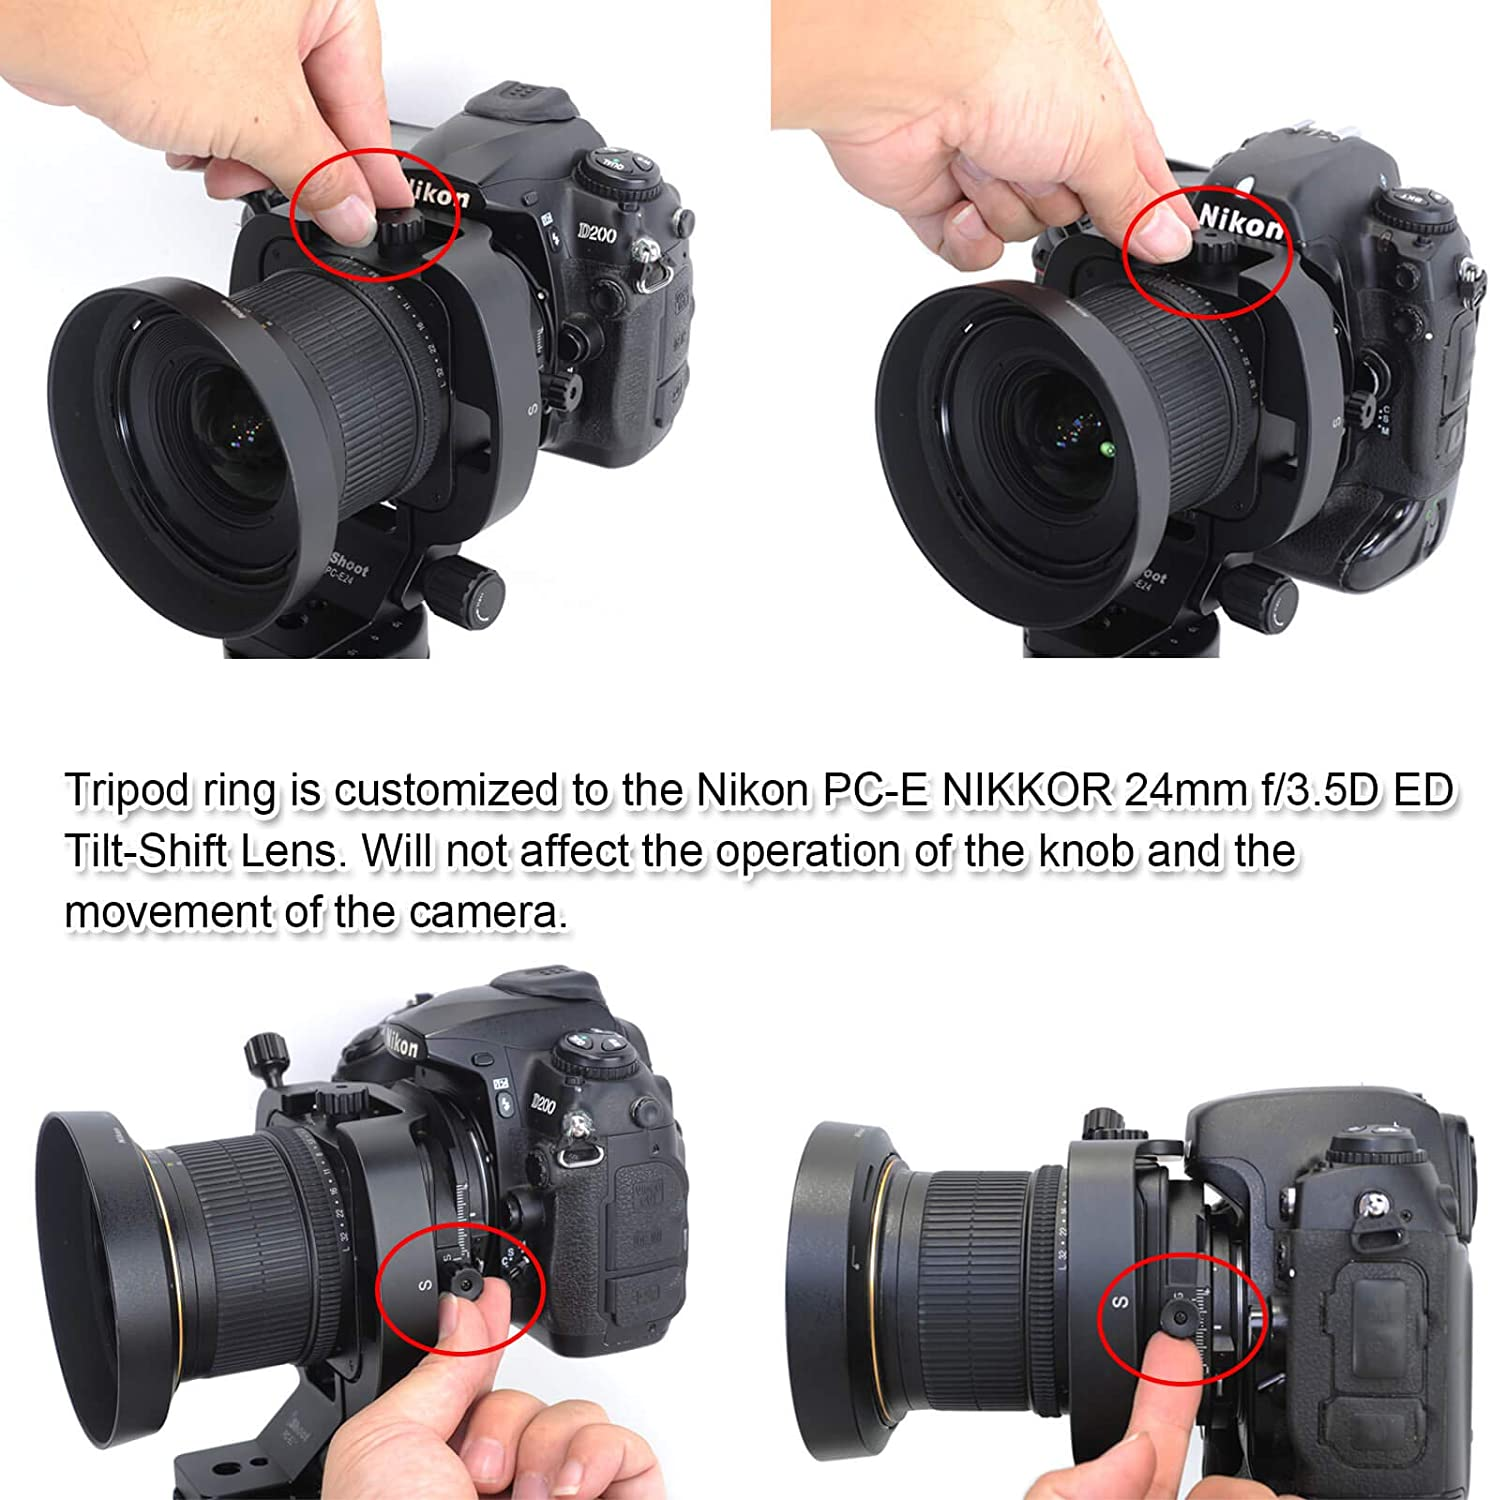 Tripod Mount Ring Lens Collar for Nikon PC-E FX Micro-NIKKOR 45mm f//2.8D ED and 24mm f//3.5D ED Tilt-Shift Lens Aviation Aluminum Camera Lens Support with Quick Release Plate for ARCA Tripod Ball Head